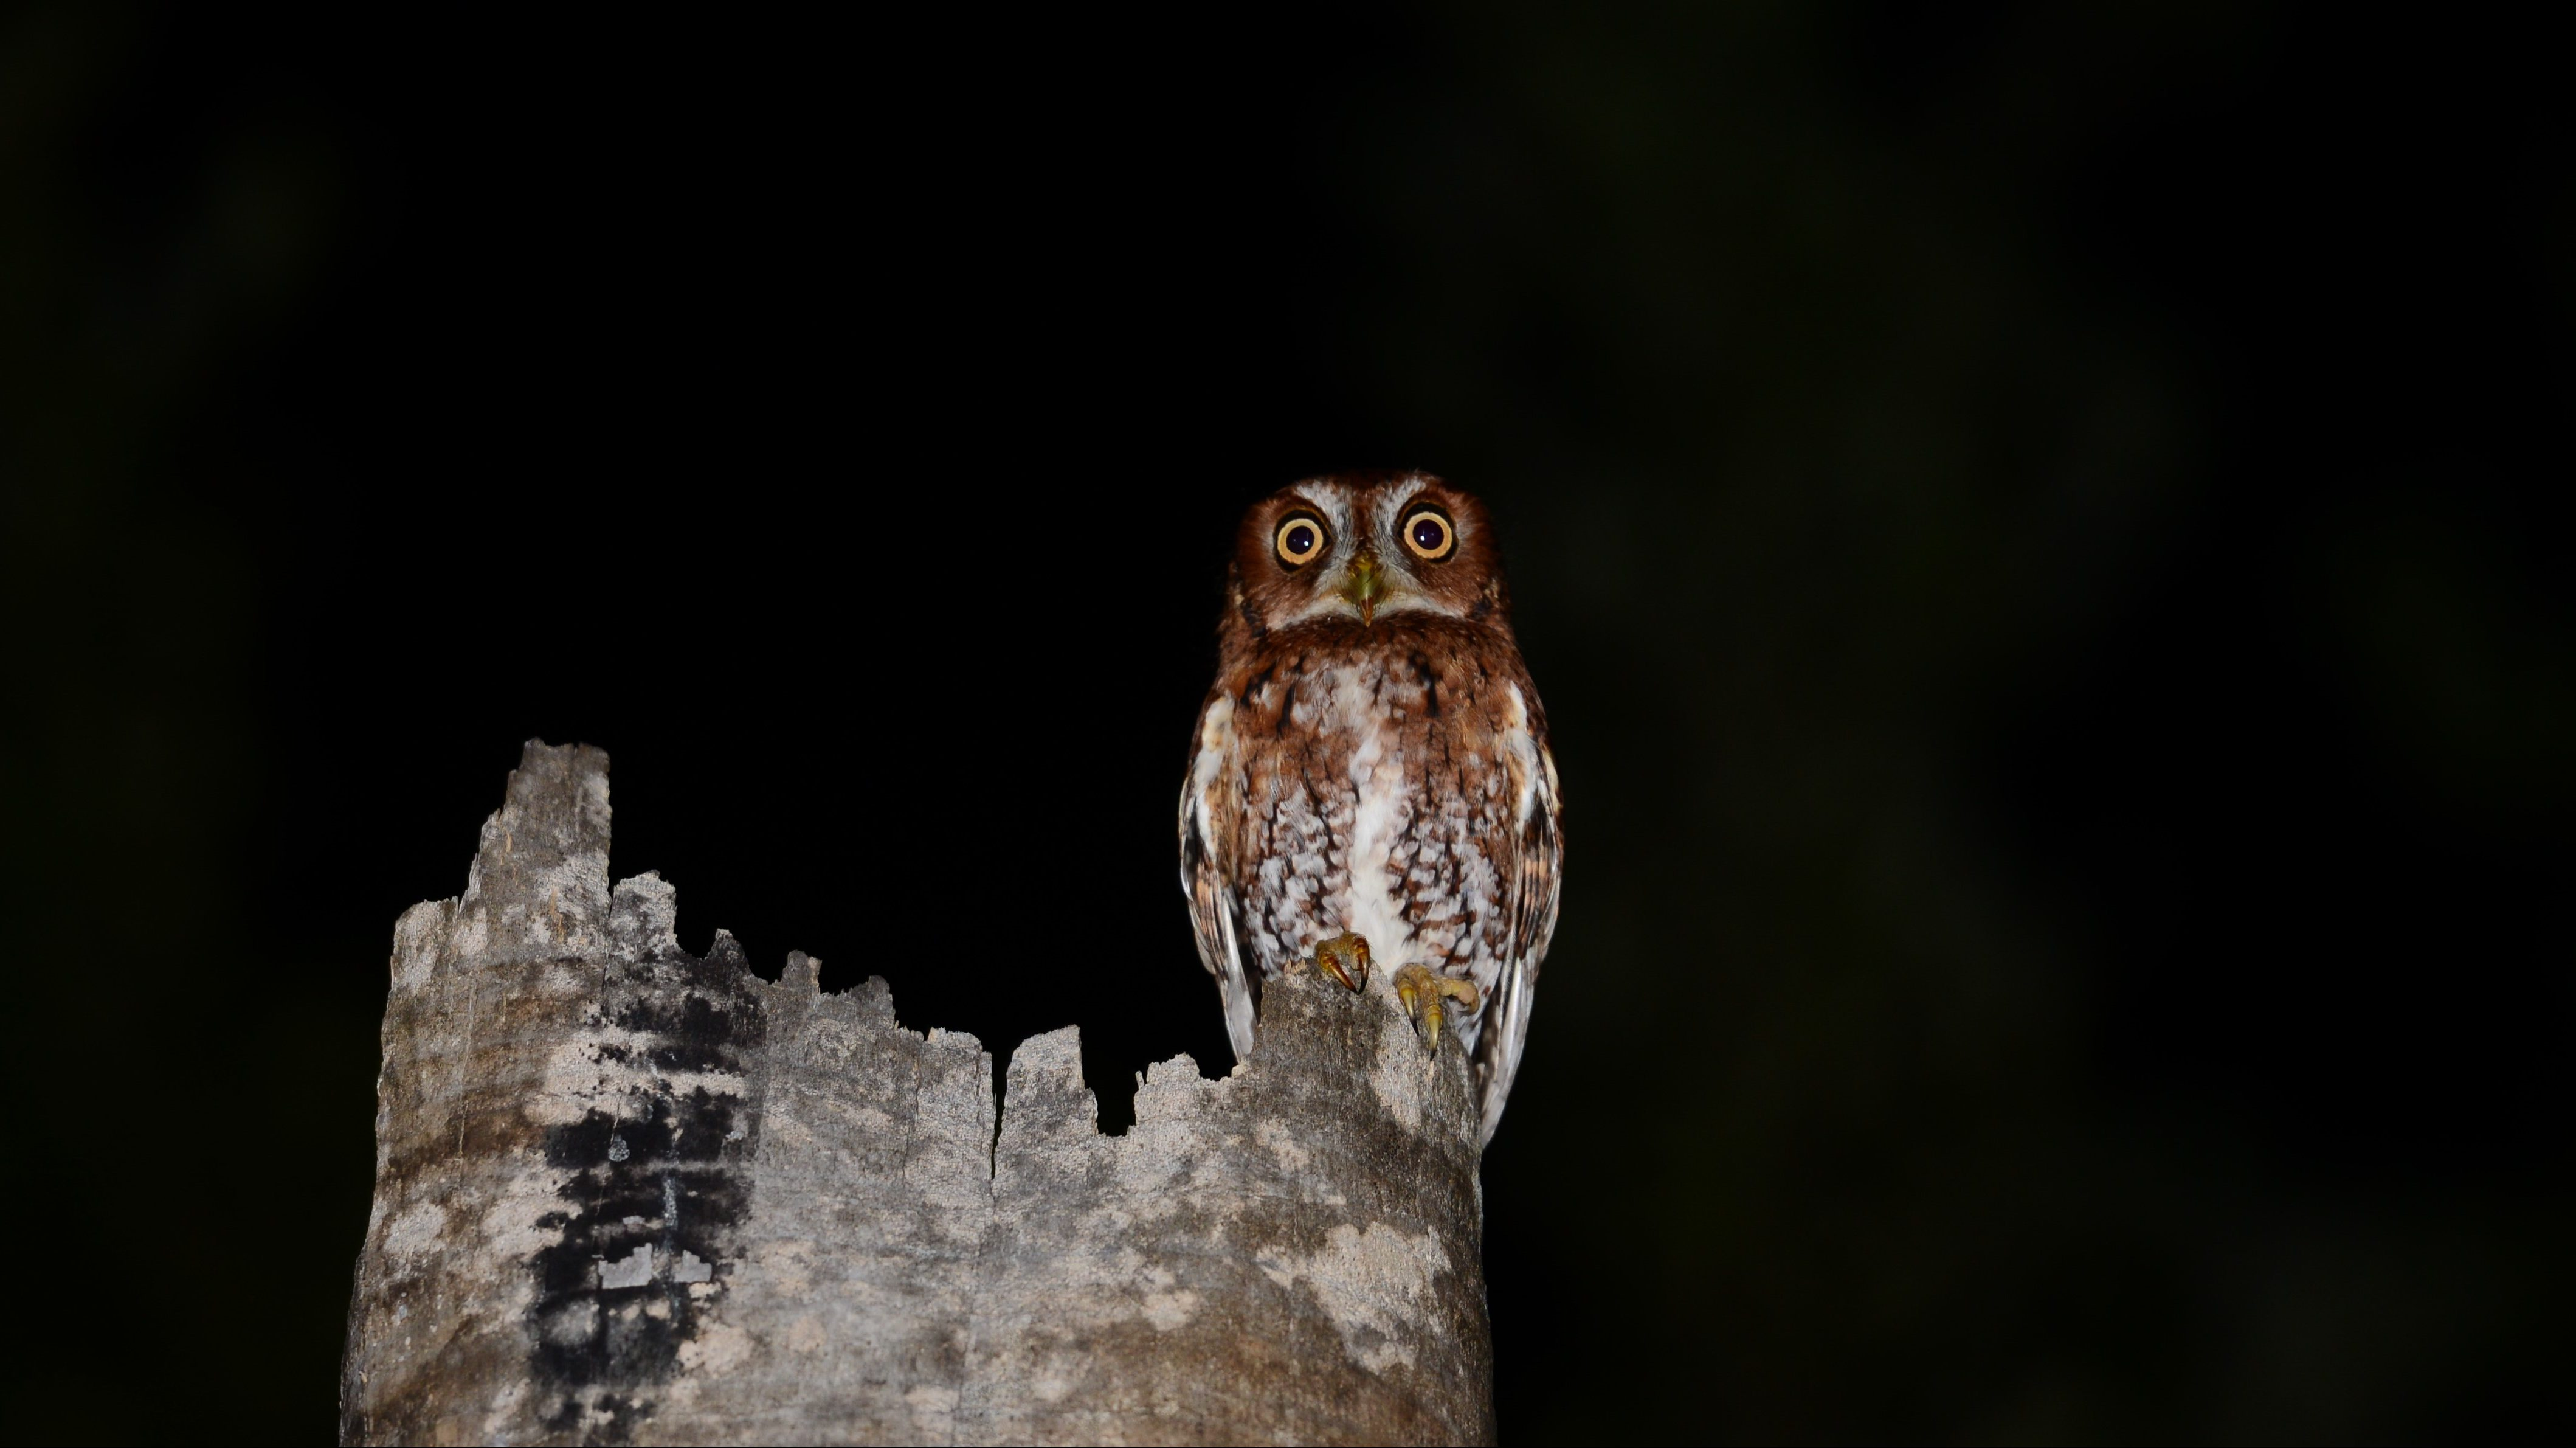 Small owl perched on top of a broken tree trunk at night